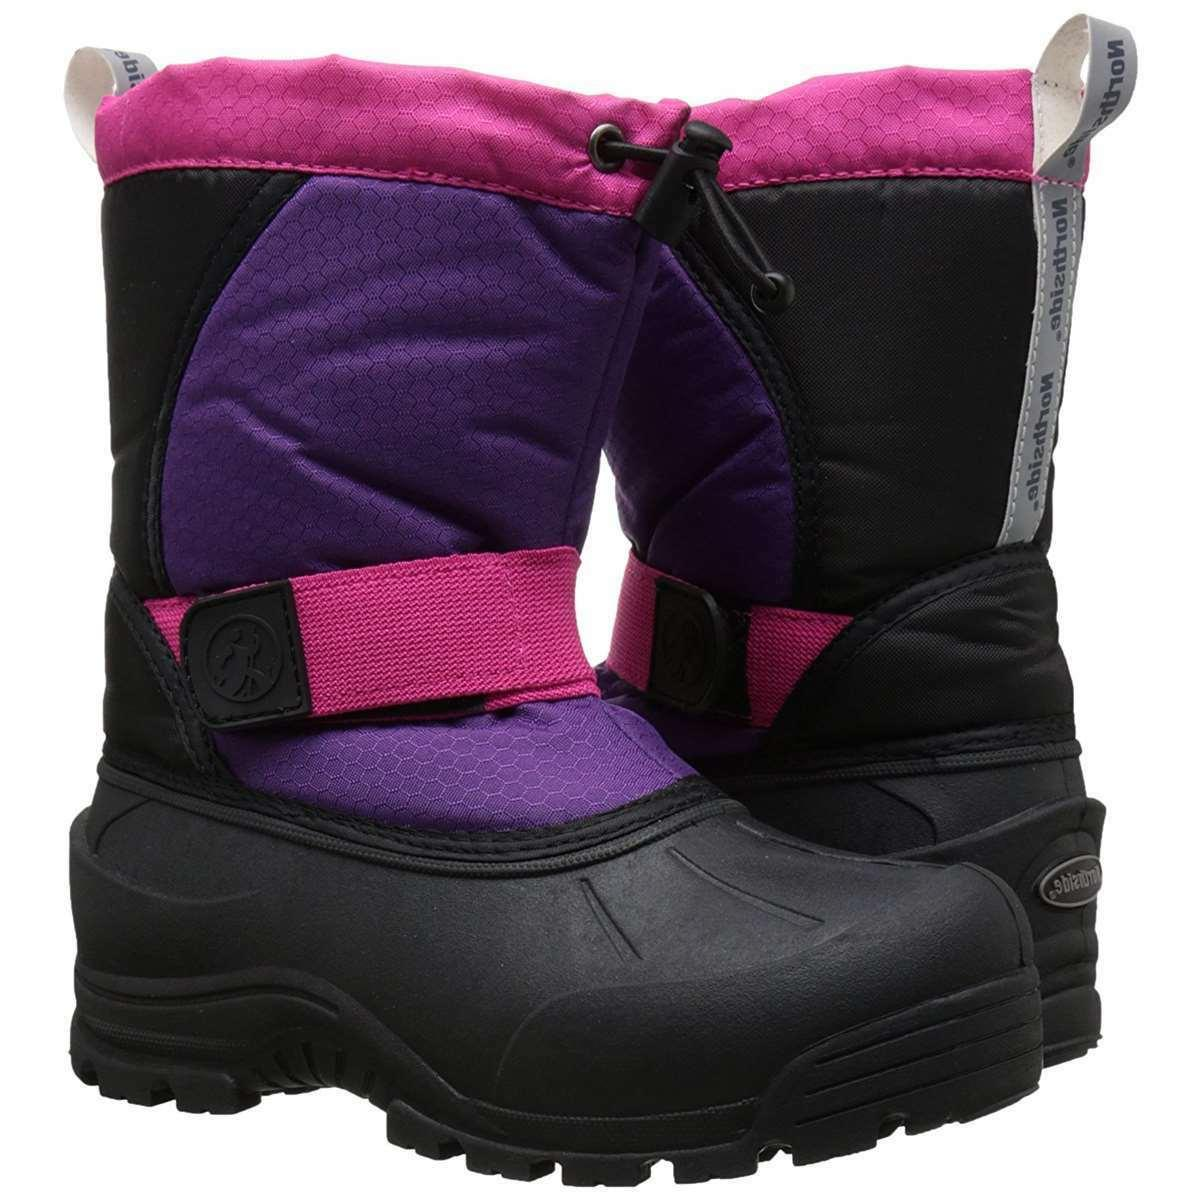 Girls Insulated Waterproof Northside Kids Winter Boots